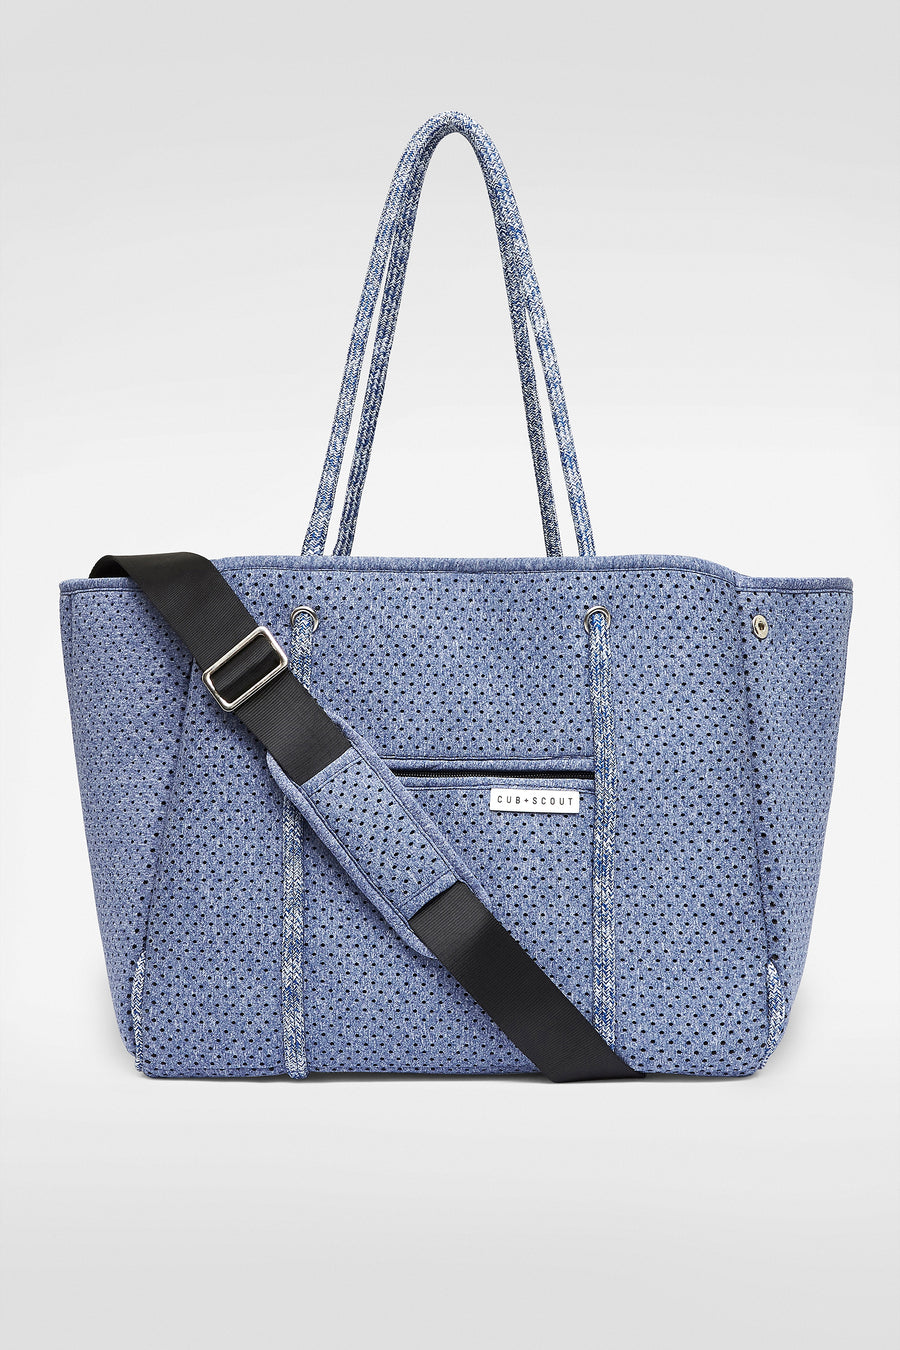 CS Carryall - Blue Marle